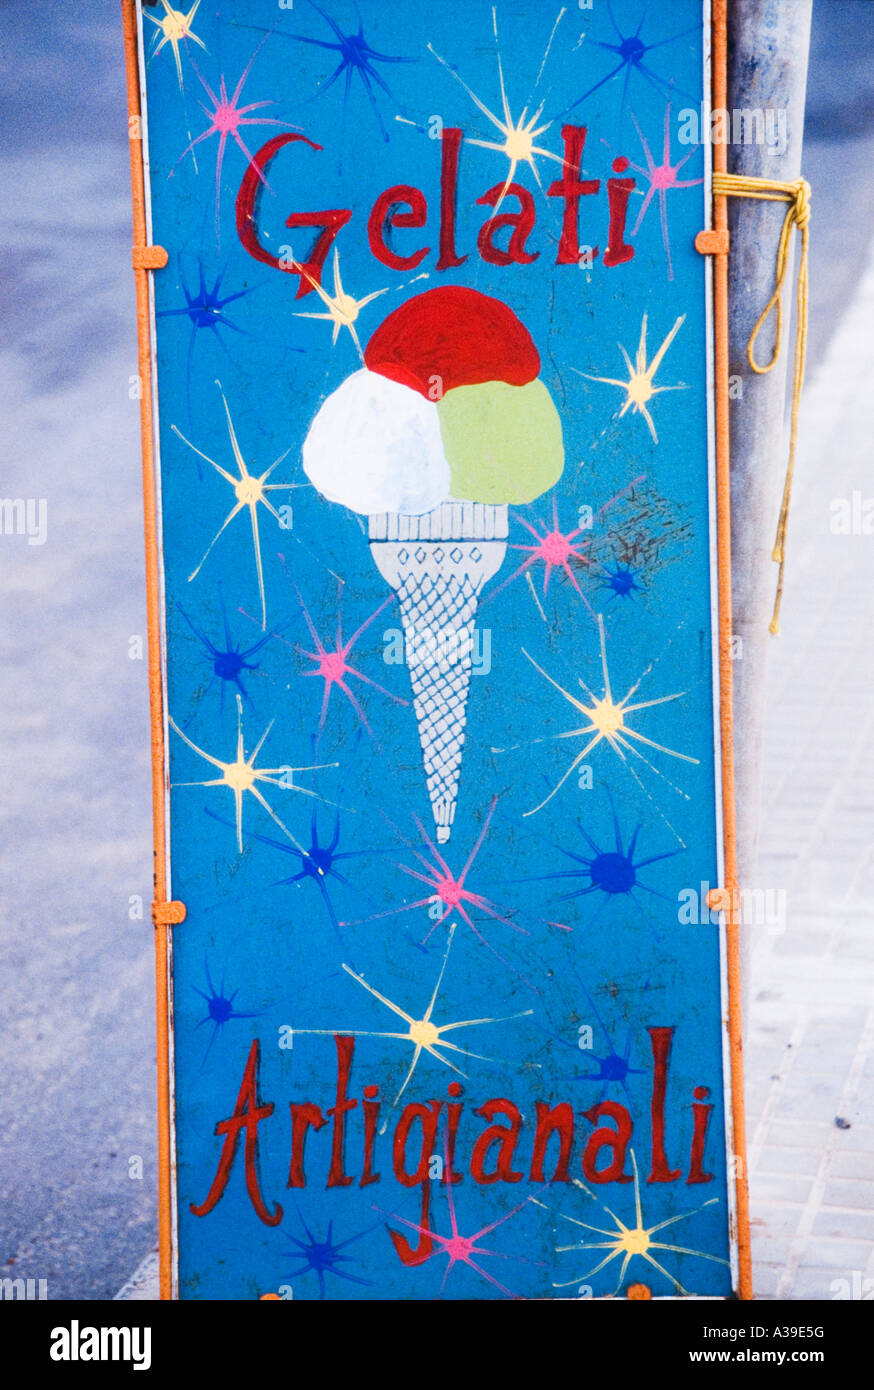 ice cream poster craft design colorful written white blue